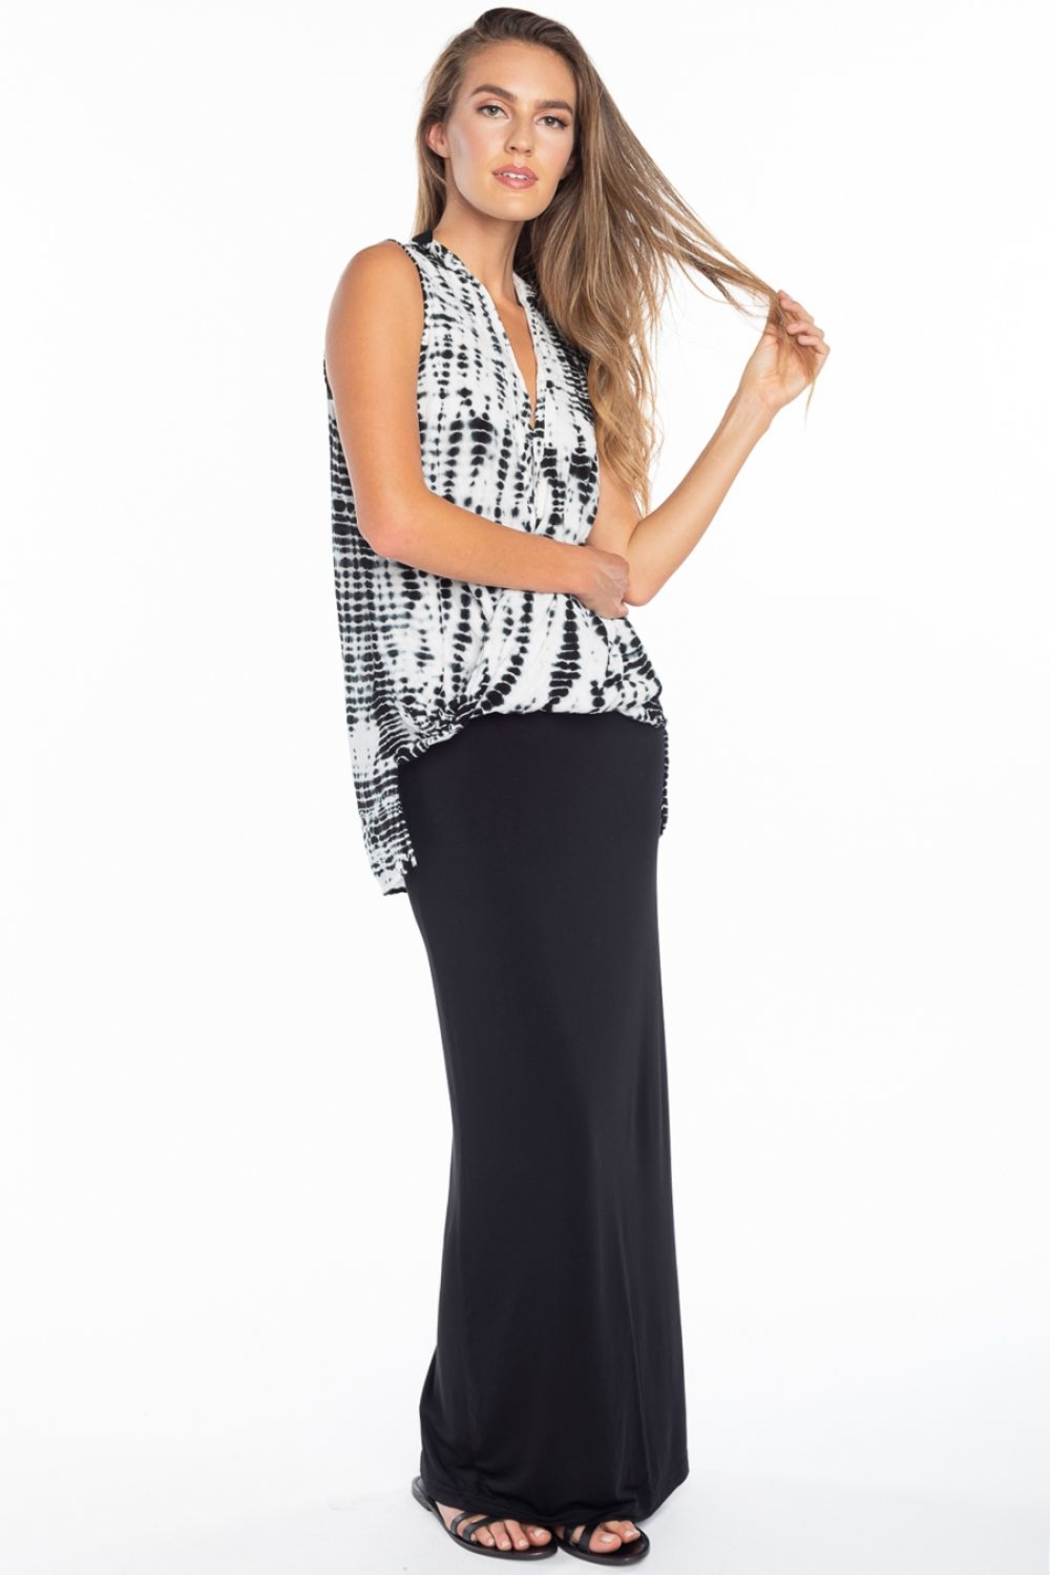 Hard Tail Hardtail Modal Maxi Skirt SIR-12 - Main Image